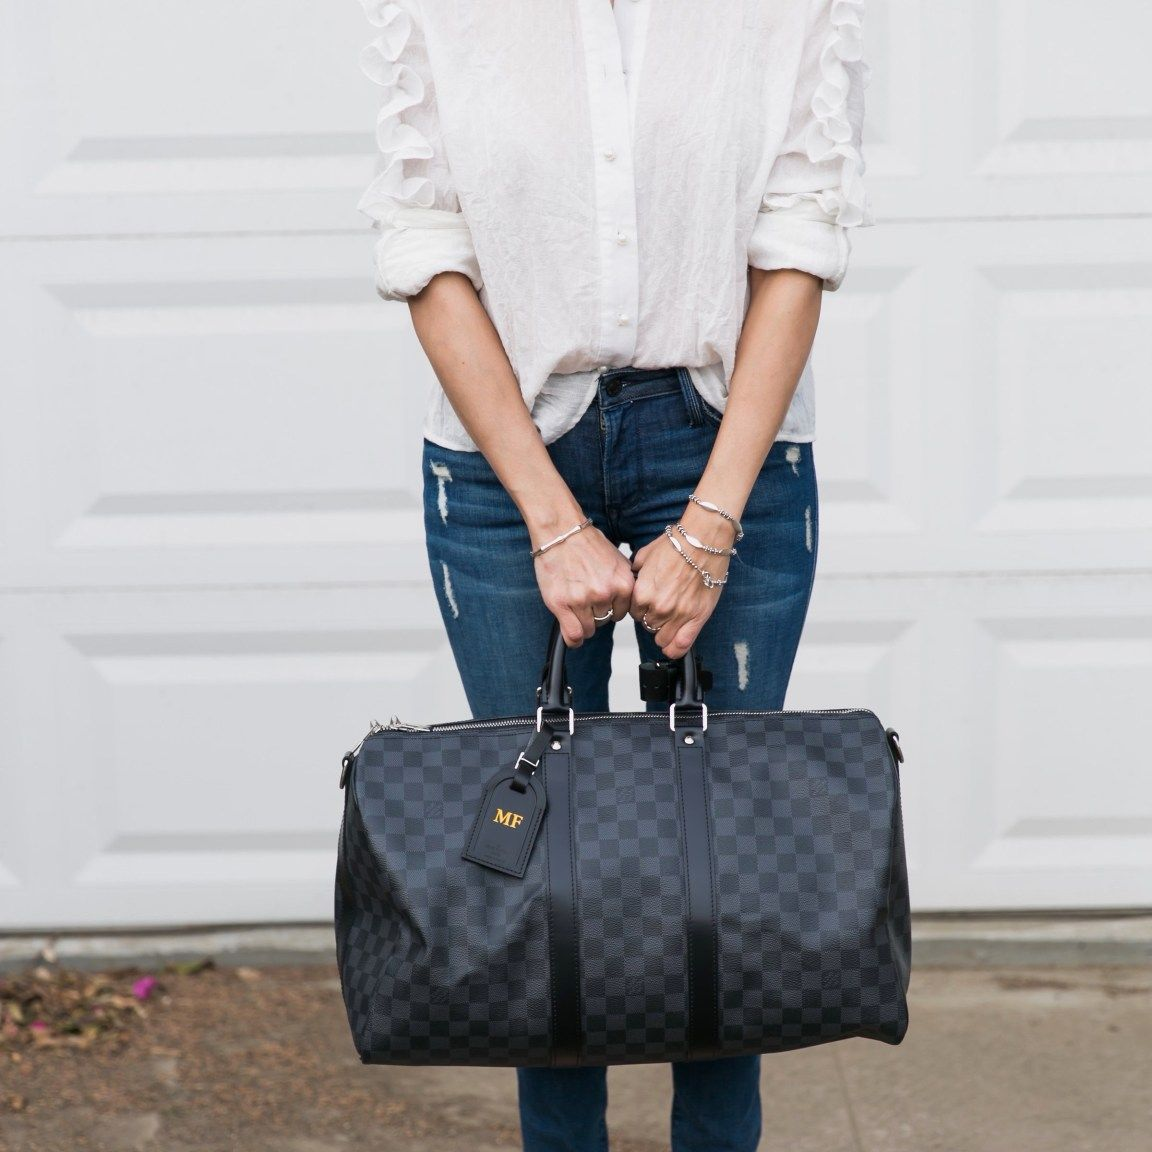 What Size Louis Vuitton Keepall Should I get? Keepall Damier Graphite